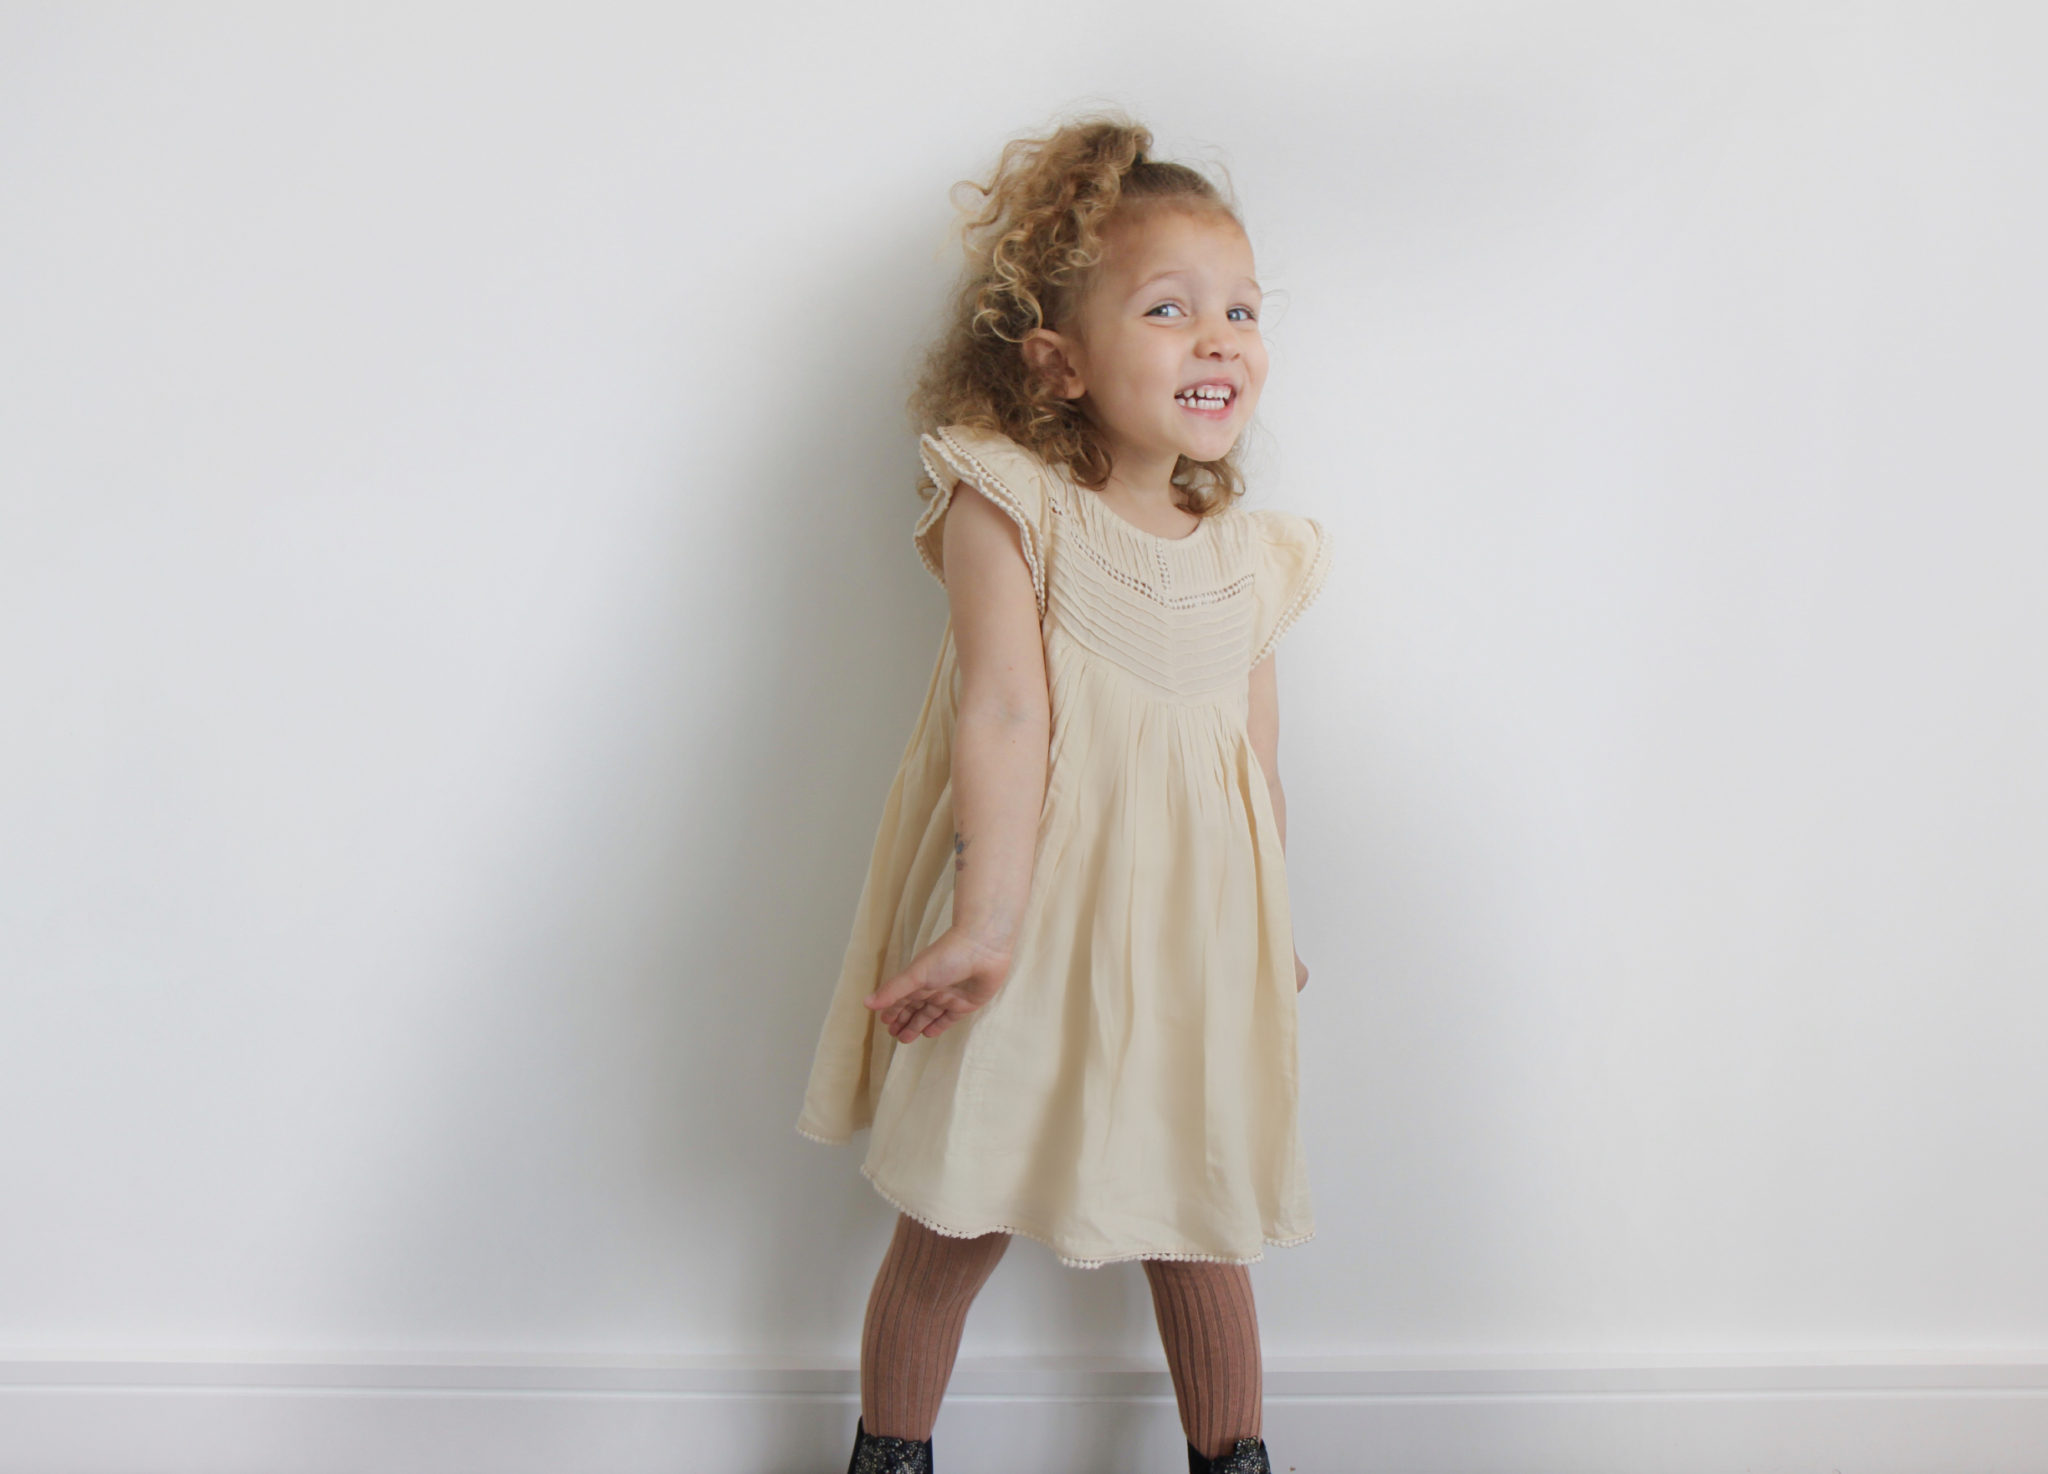 Corporate-style-story-muddy-creatures-kids-styling-service-review-mar-mar-copenhagen-cream-dress-rose-tights-floral-chelsea-boots-2017-05-21